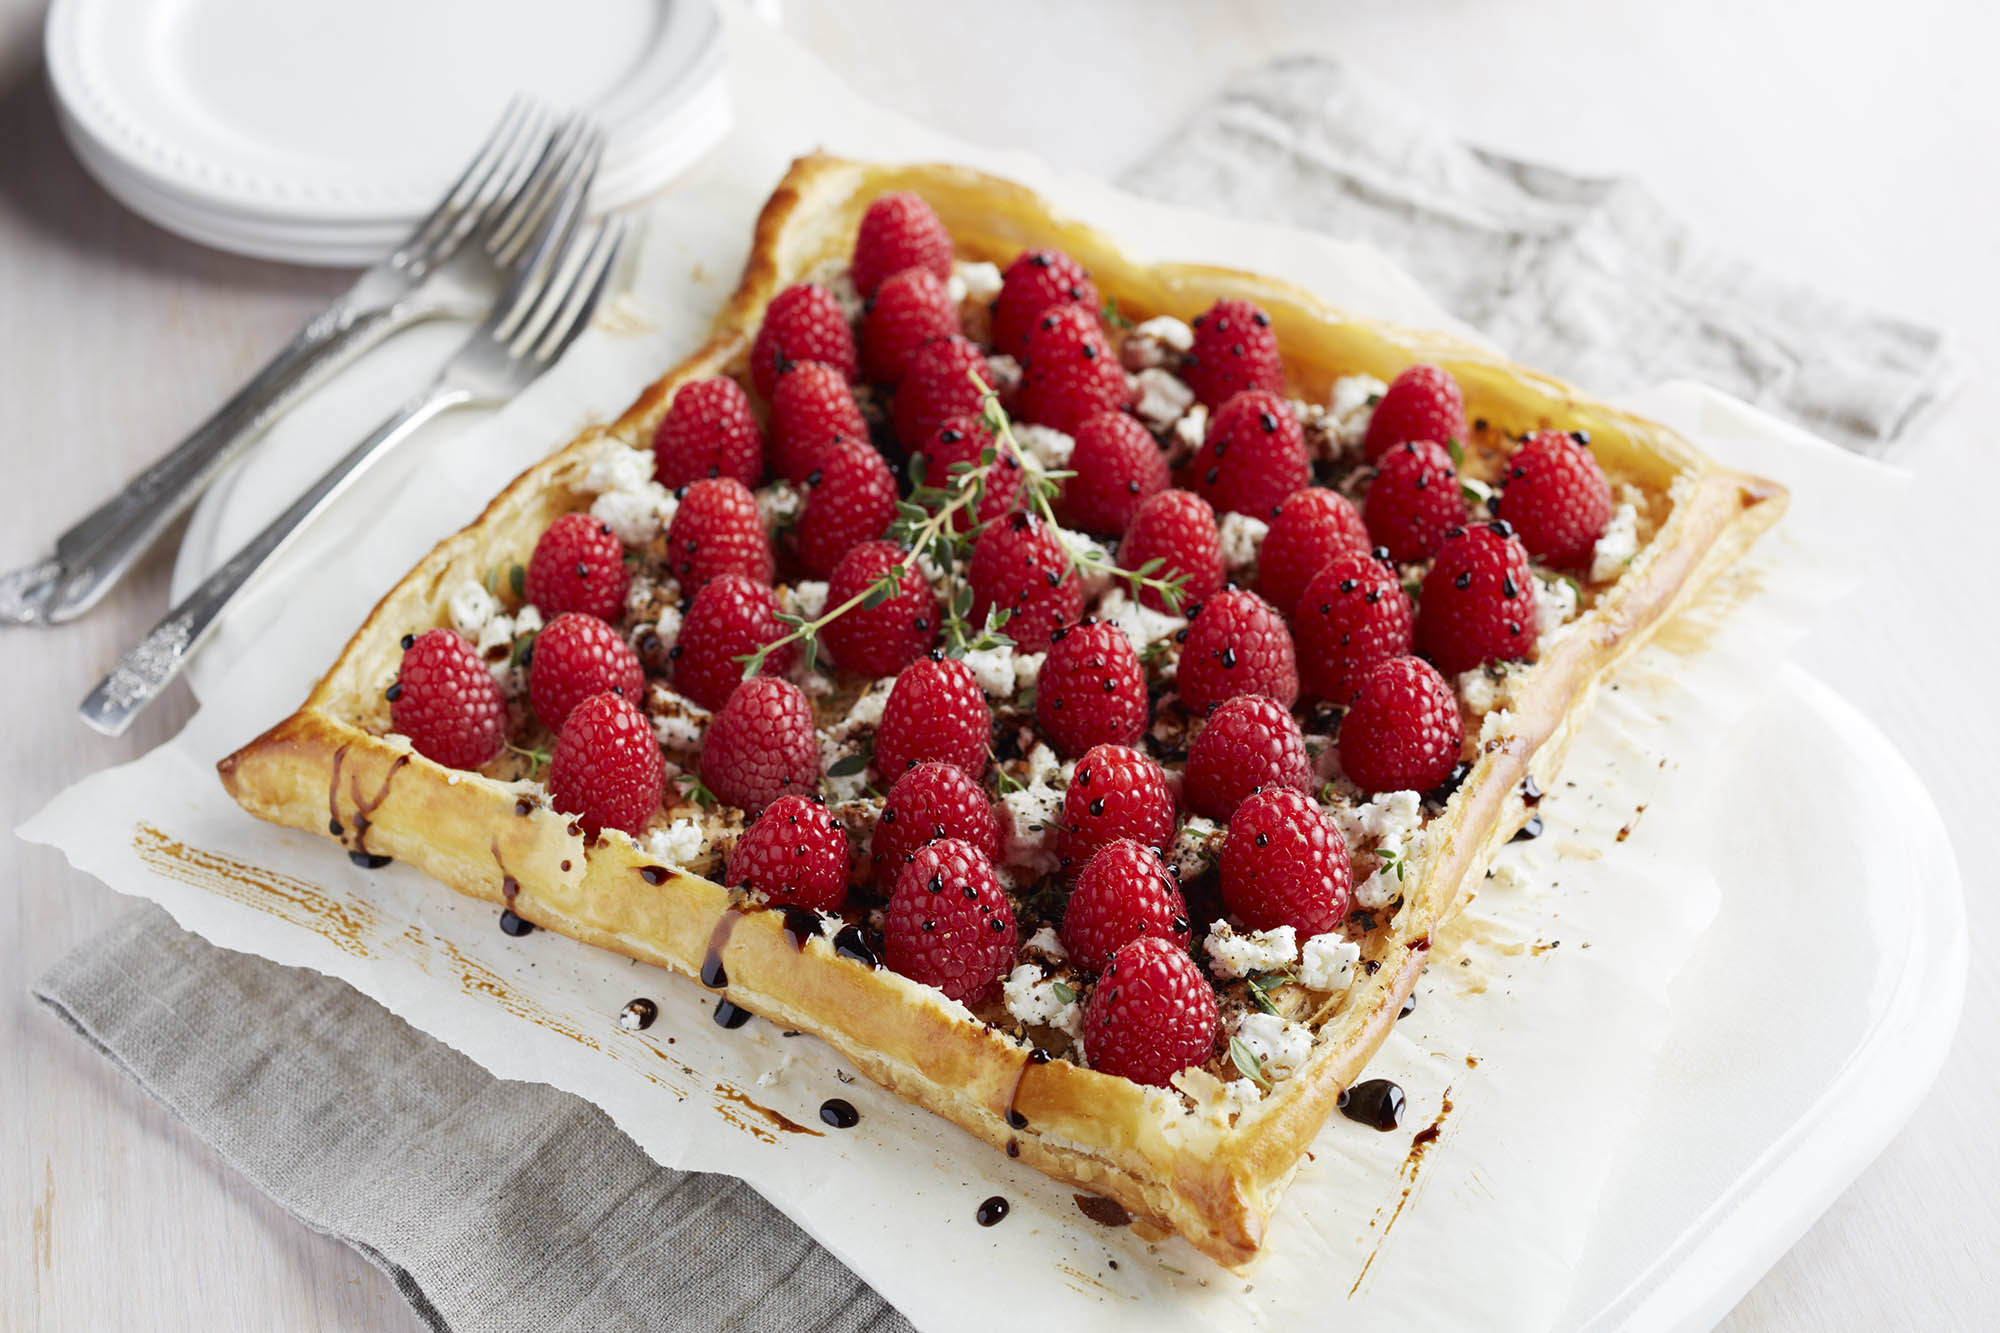 savory cheese galette with raspberries